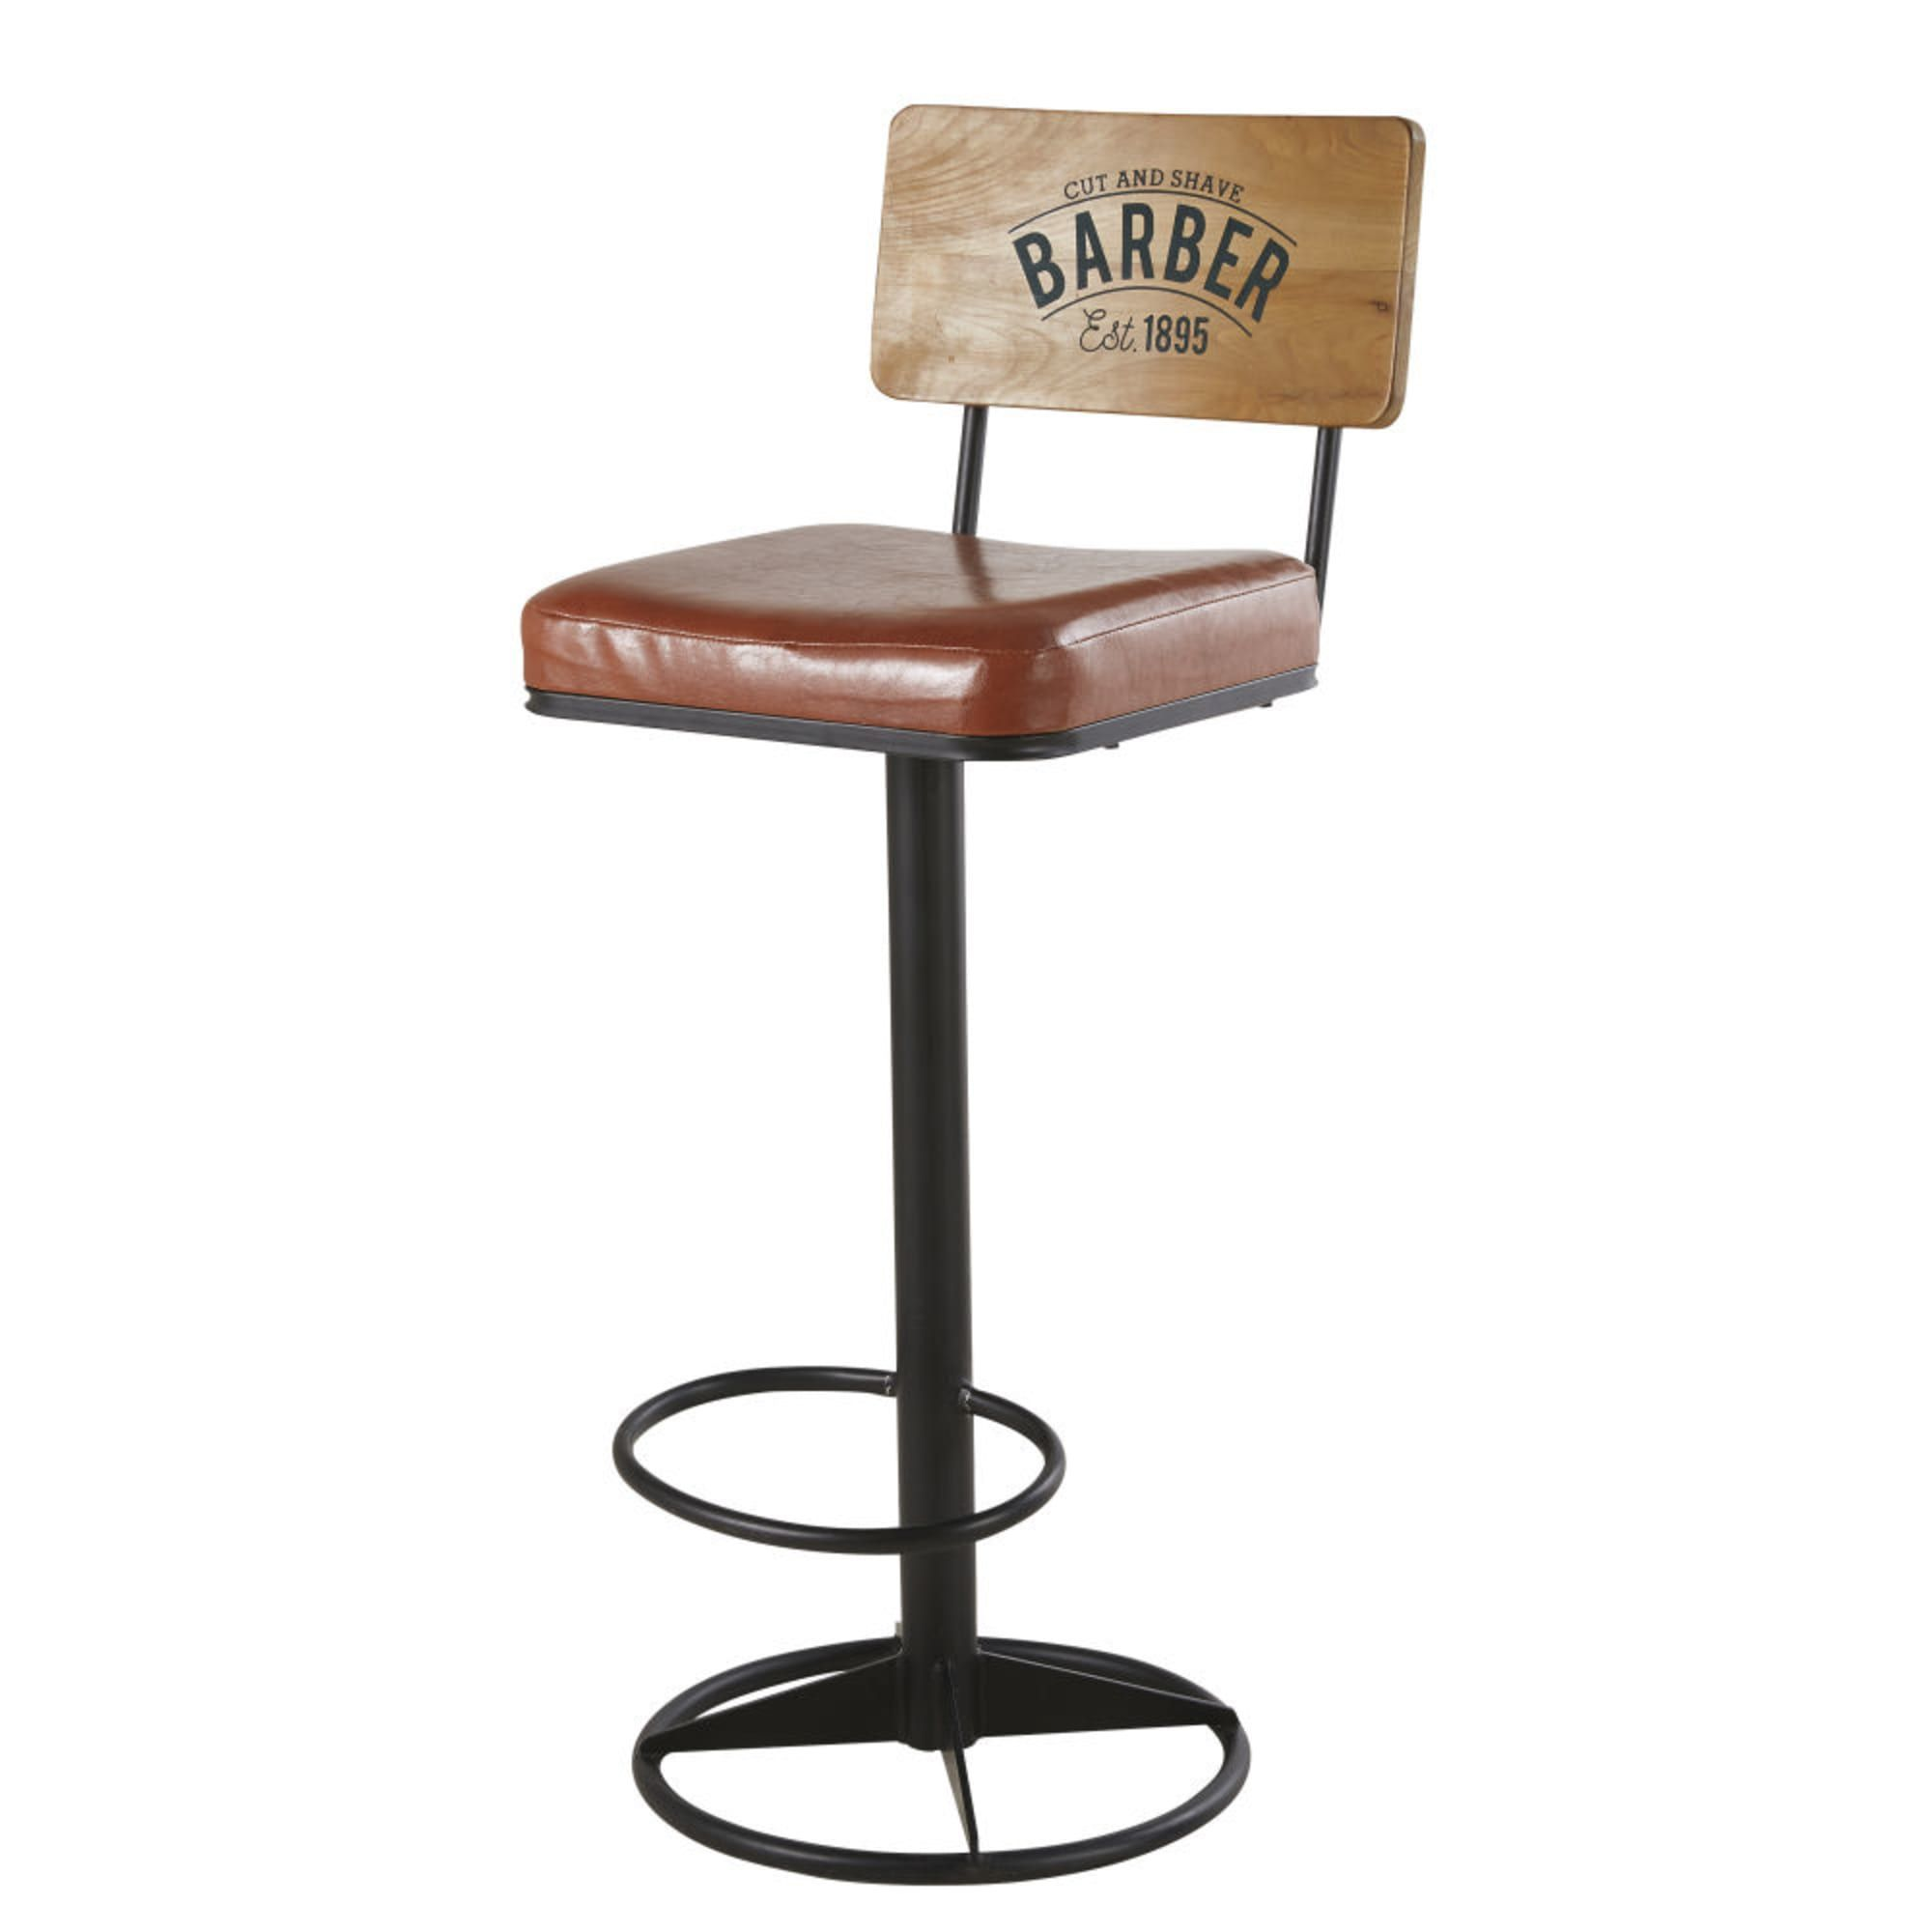 Chaise De Bar En Metal Noir Et Textile Enduit Marron Chaise Haute Cuisine Chaise Bar Chaise